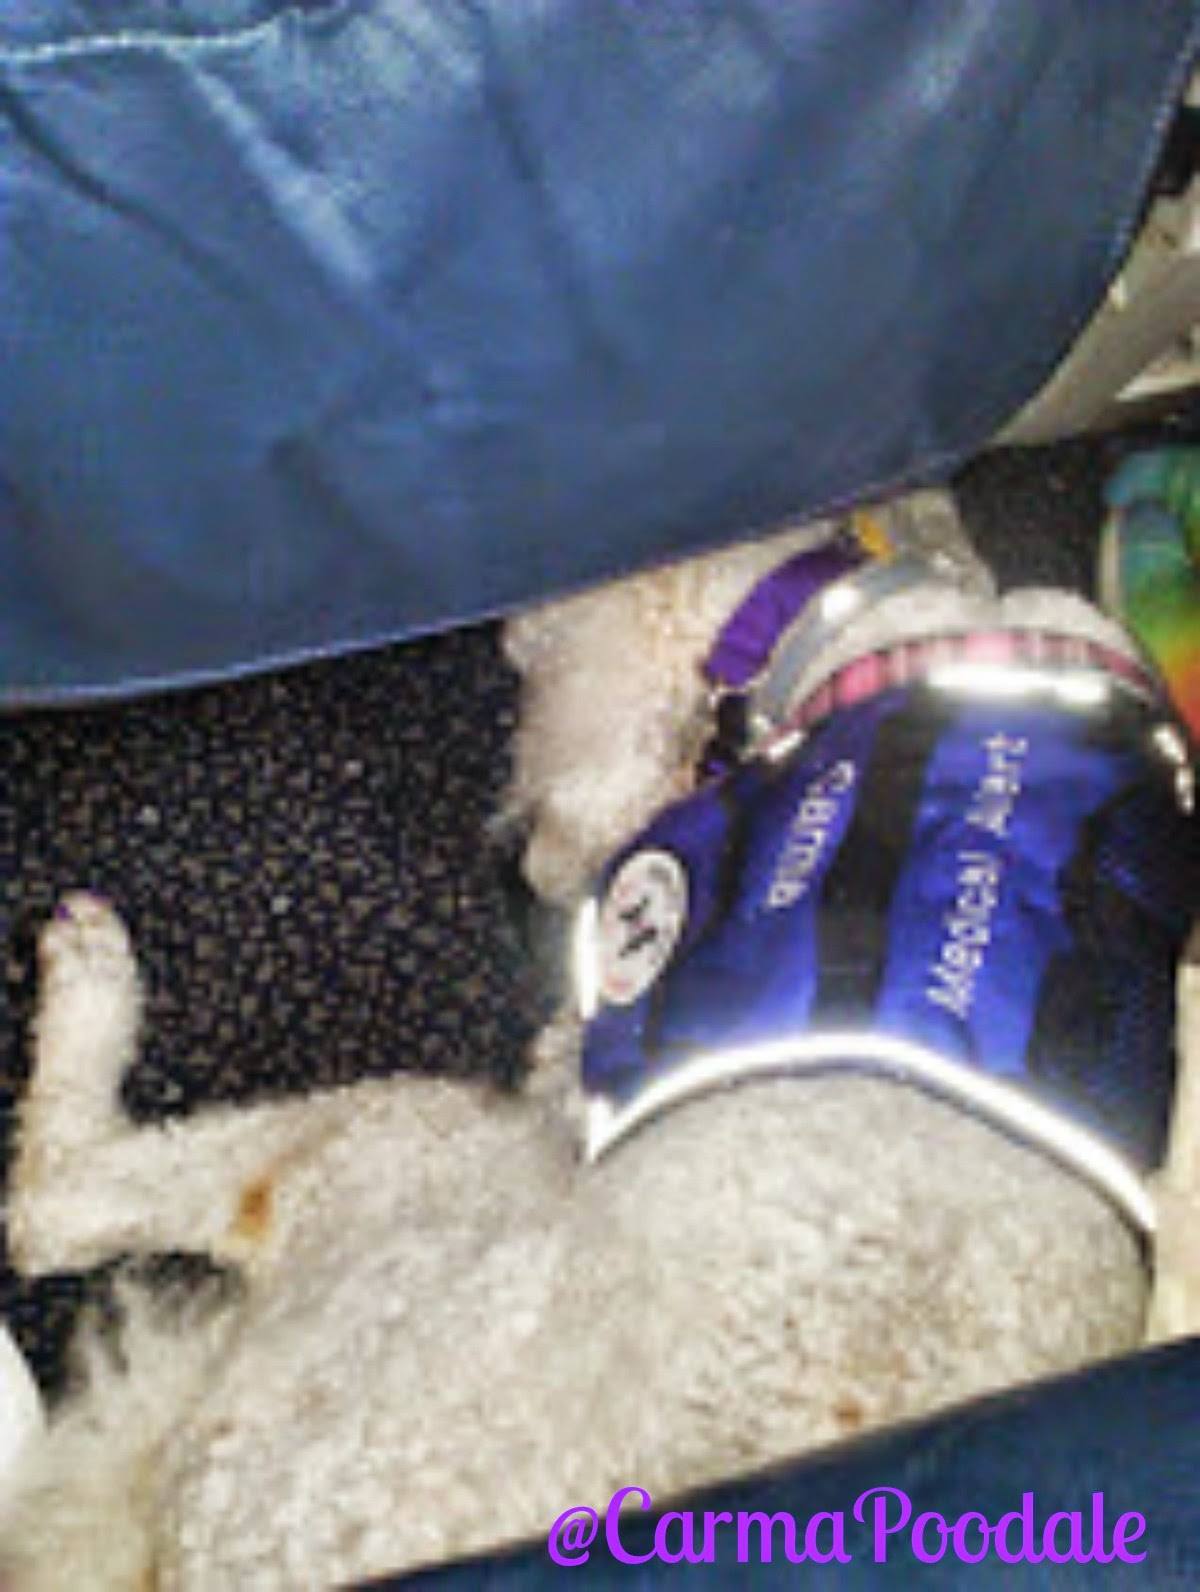 Poodle laying under seat